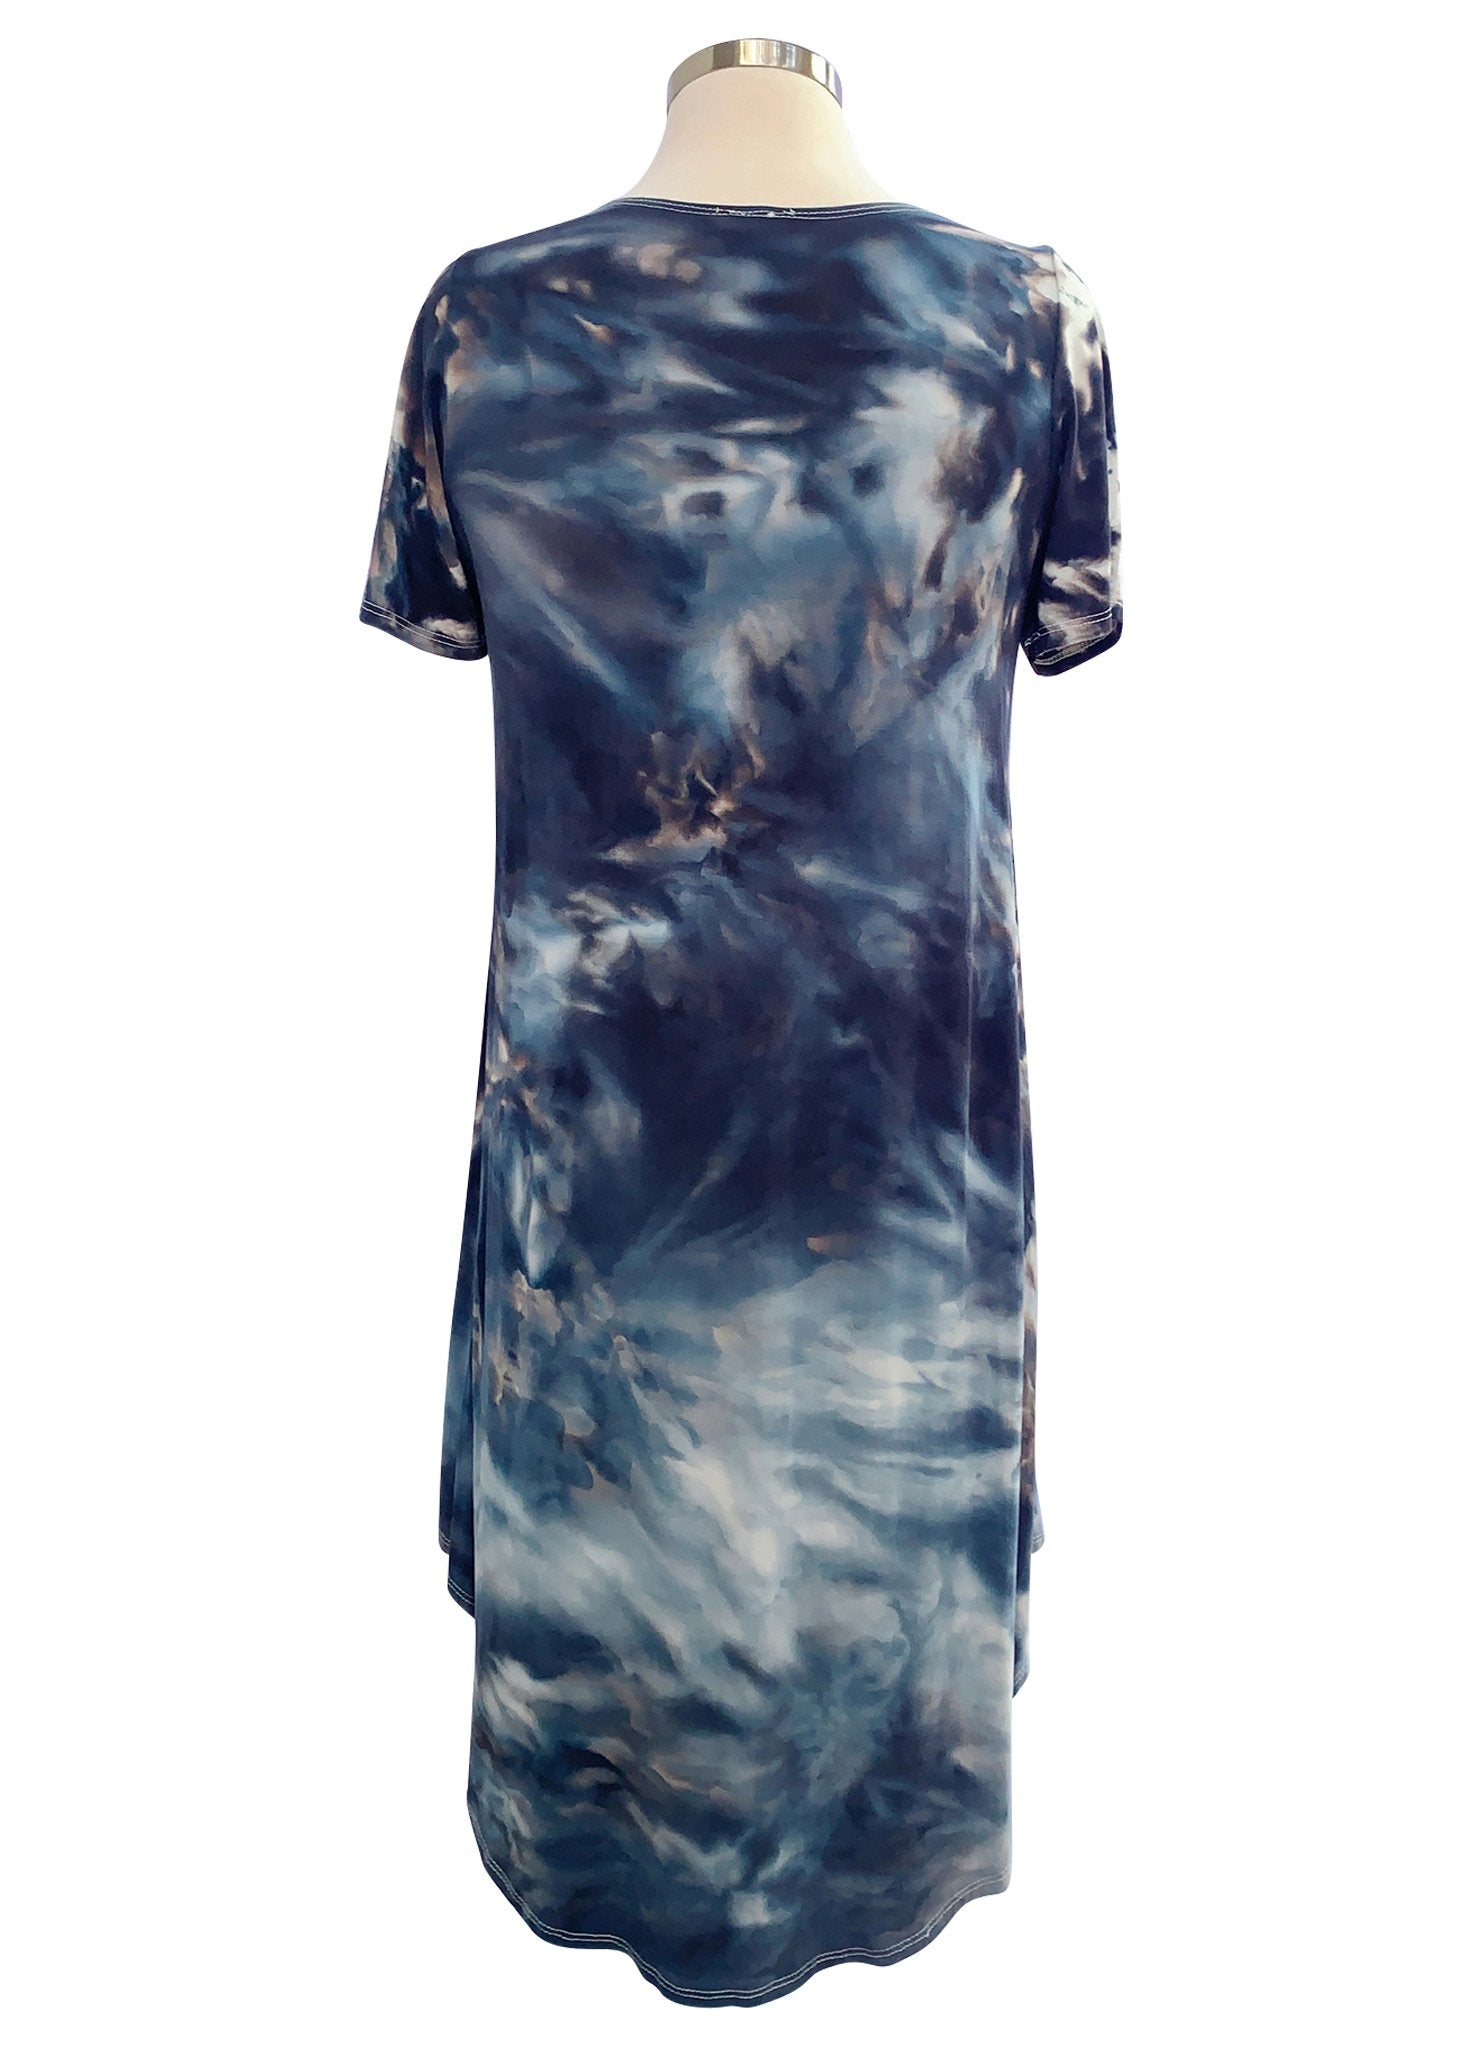 The Perfect Short Sleeve Dress in Moon Stone - Dress - Dyetology